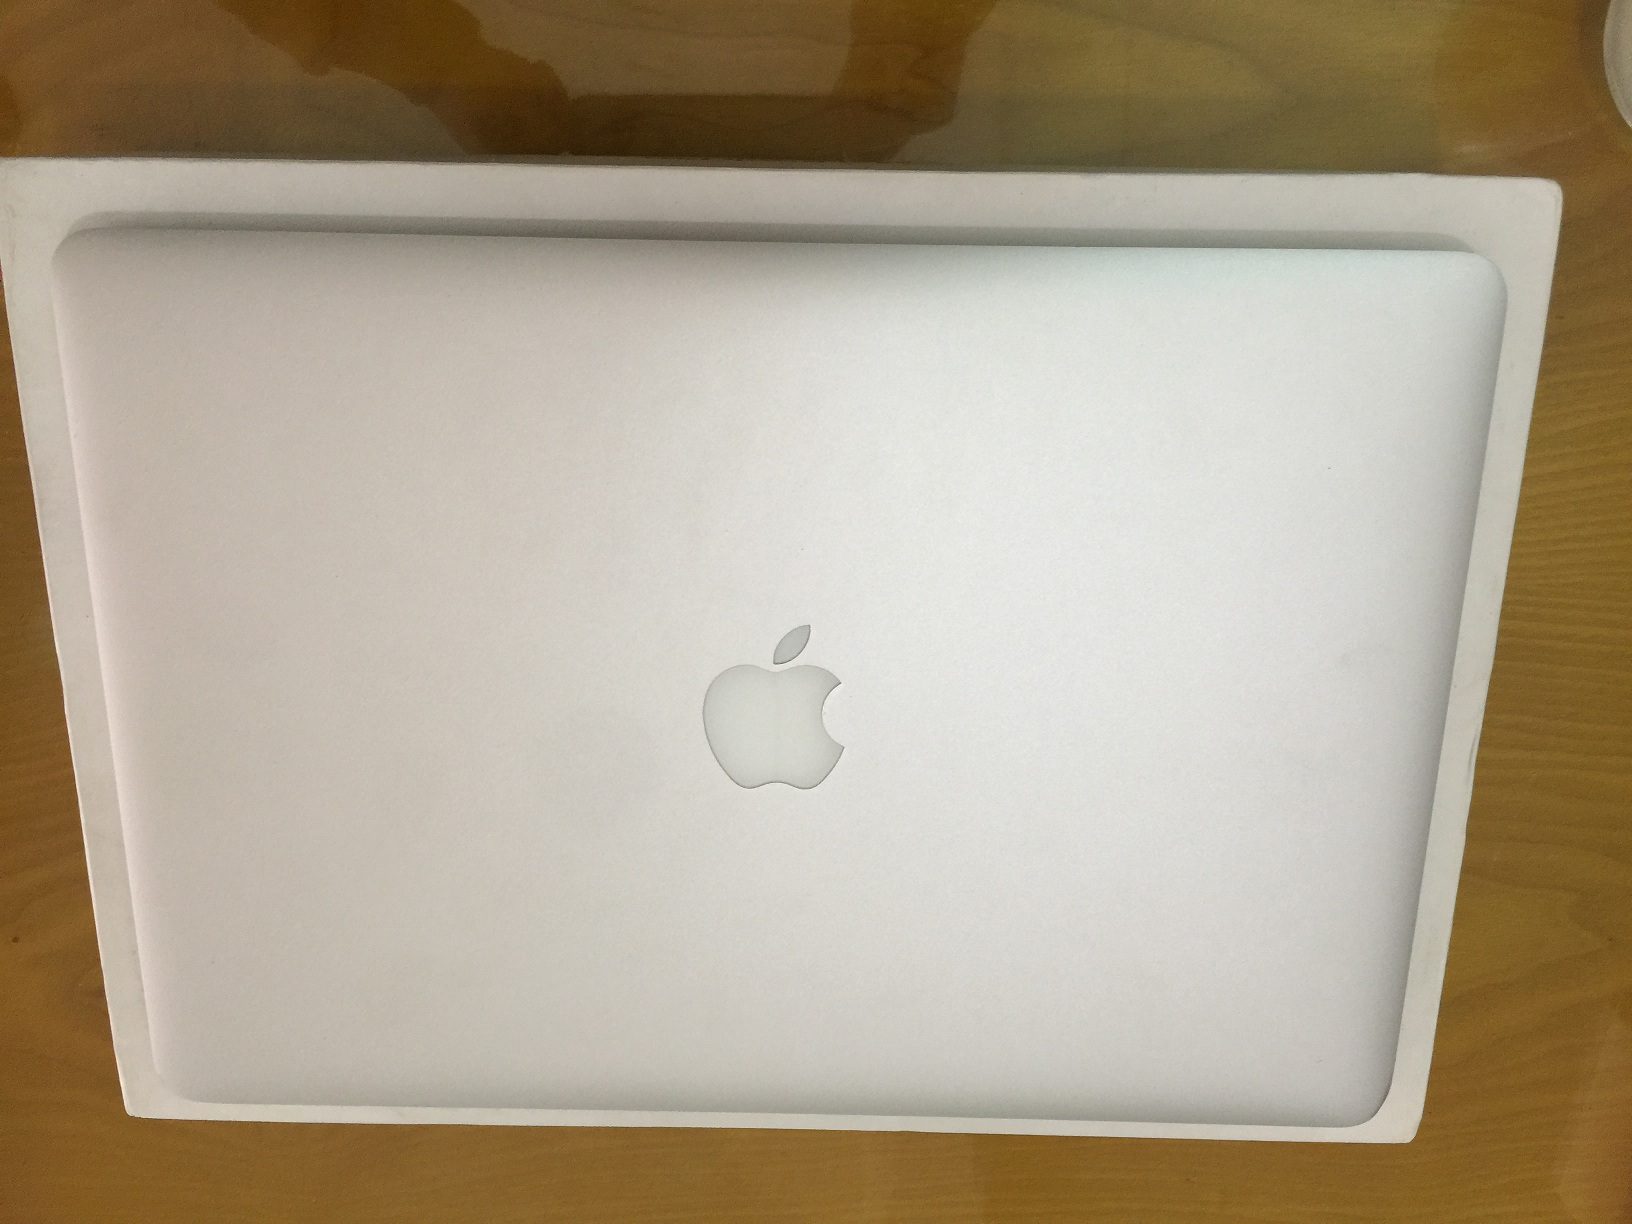 Macbook Pro Retina 15 inch 2013 – ME664 LIKE NEW FULL HỘP CPU i7 - Ram 8GB/1600 - SSD 256 PCI